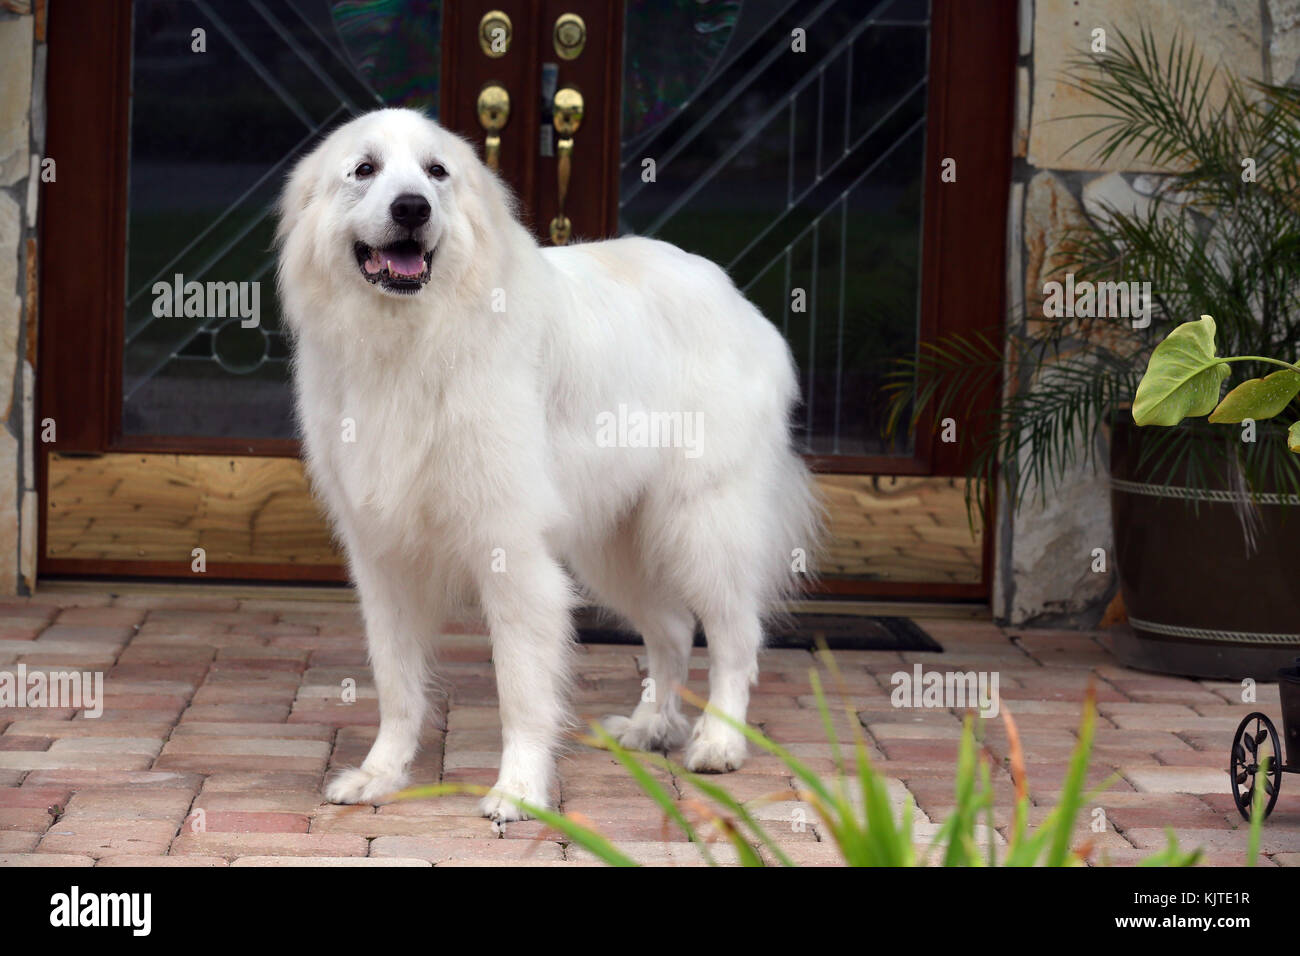 Great Pyrenees Stock Photos & Great Pyrenees Stock Images